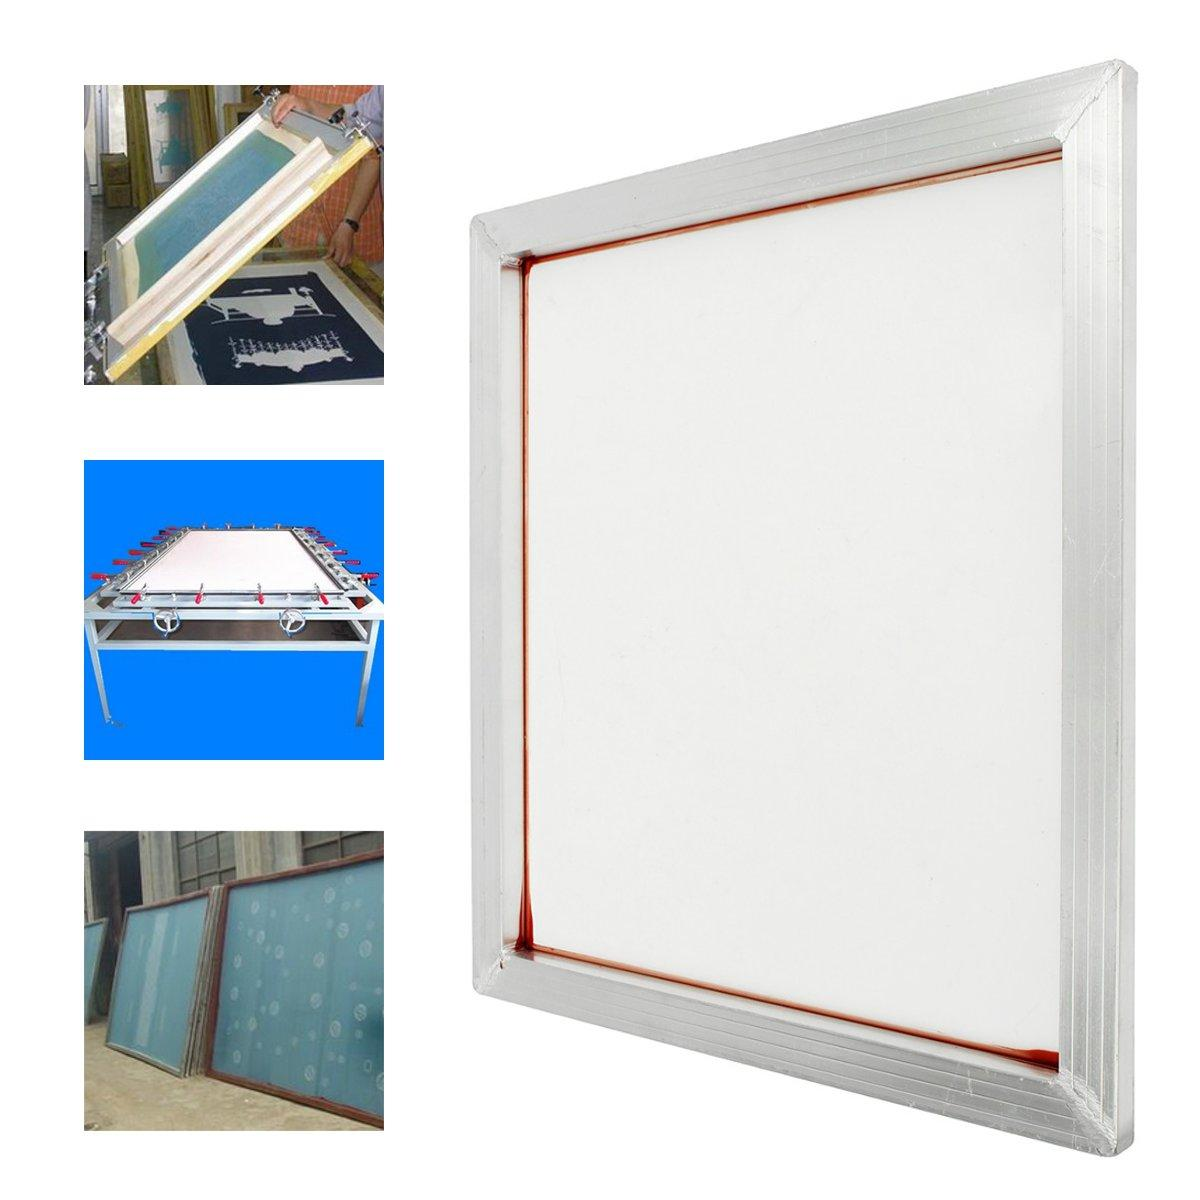 24''x20'' Aluminum Silk Screen Printing Press Screens Frame With 230 Mesh Count